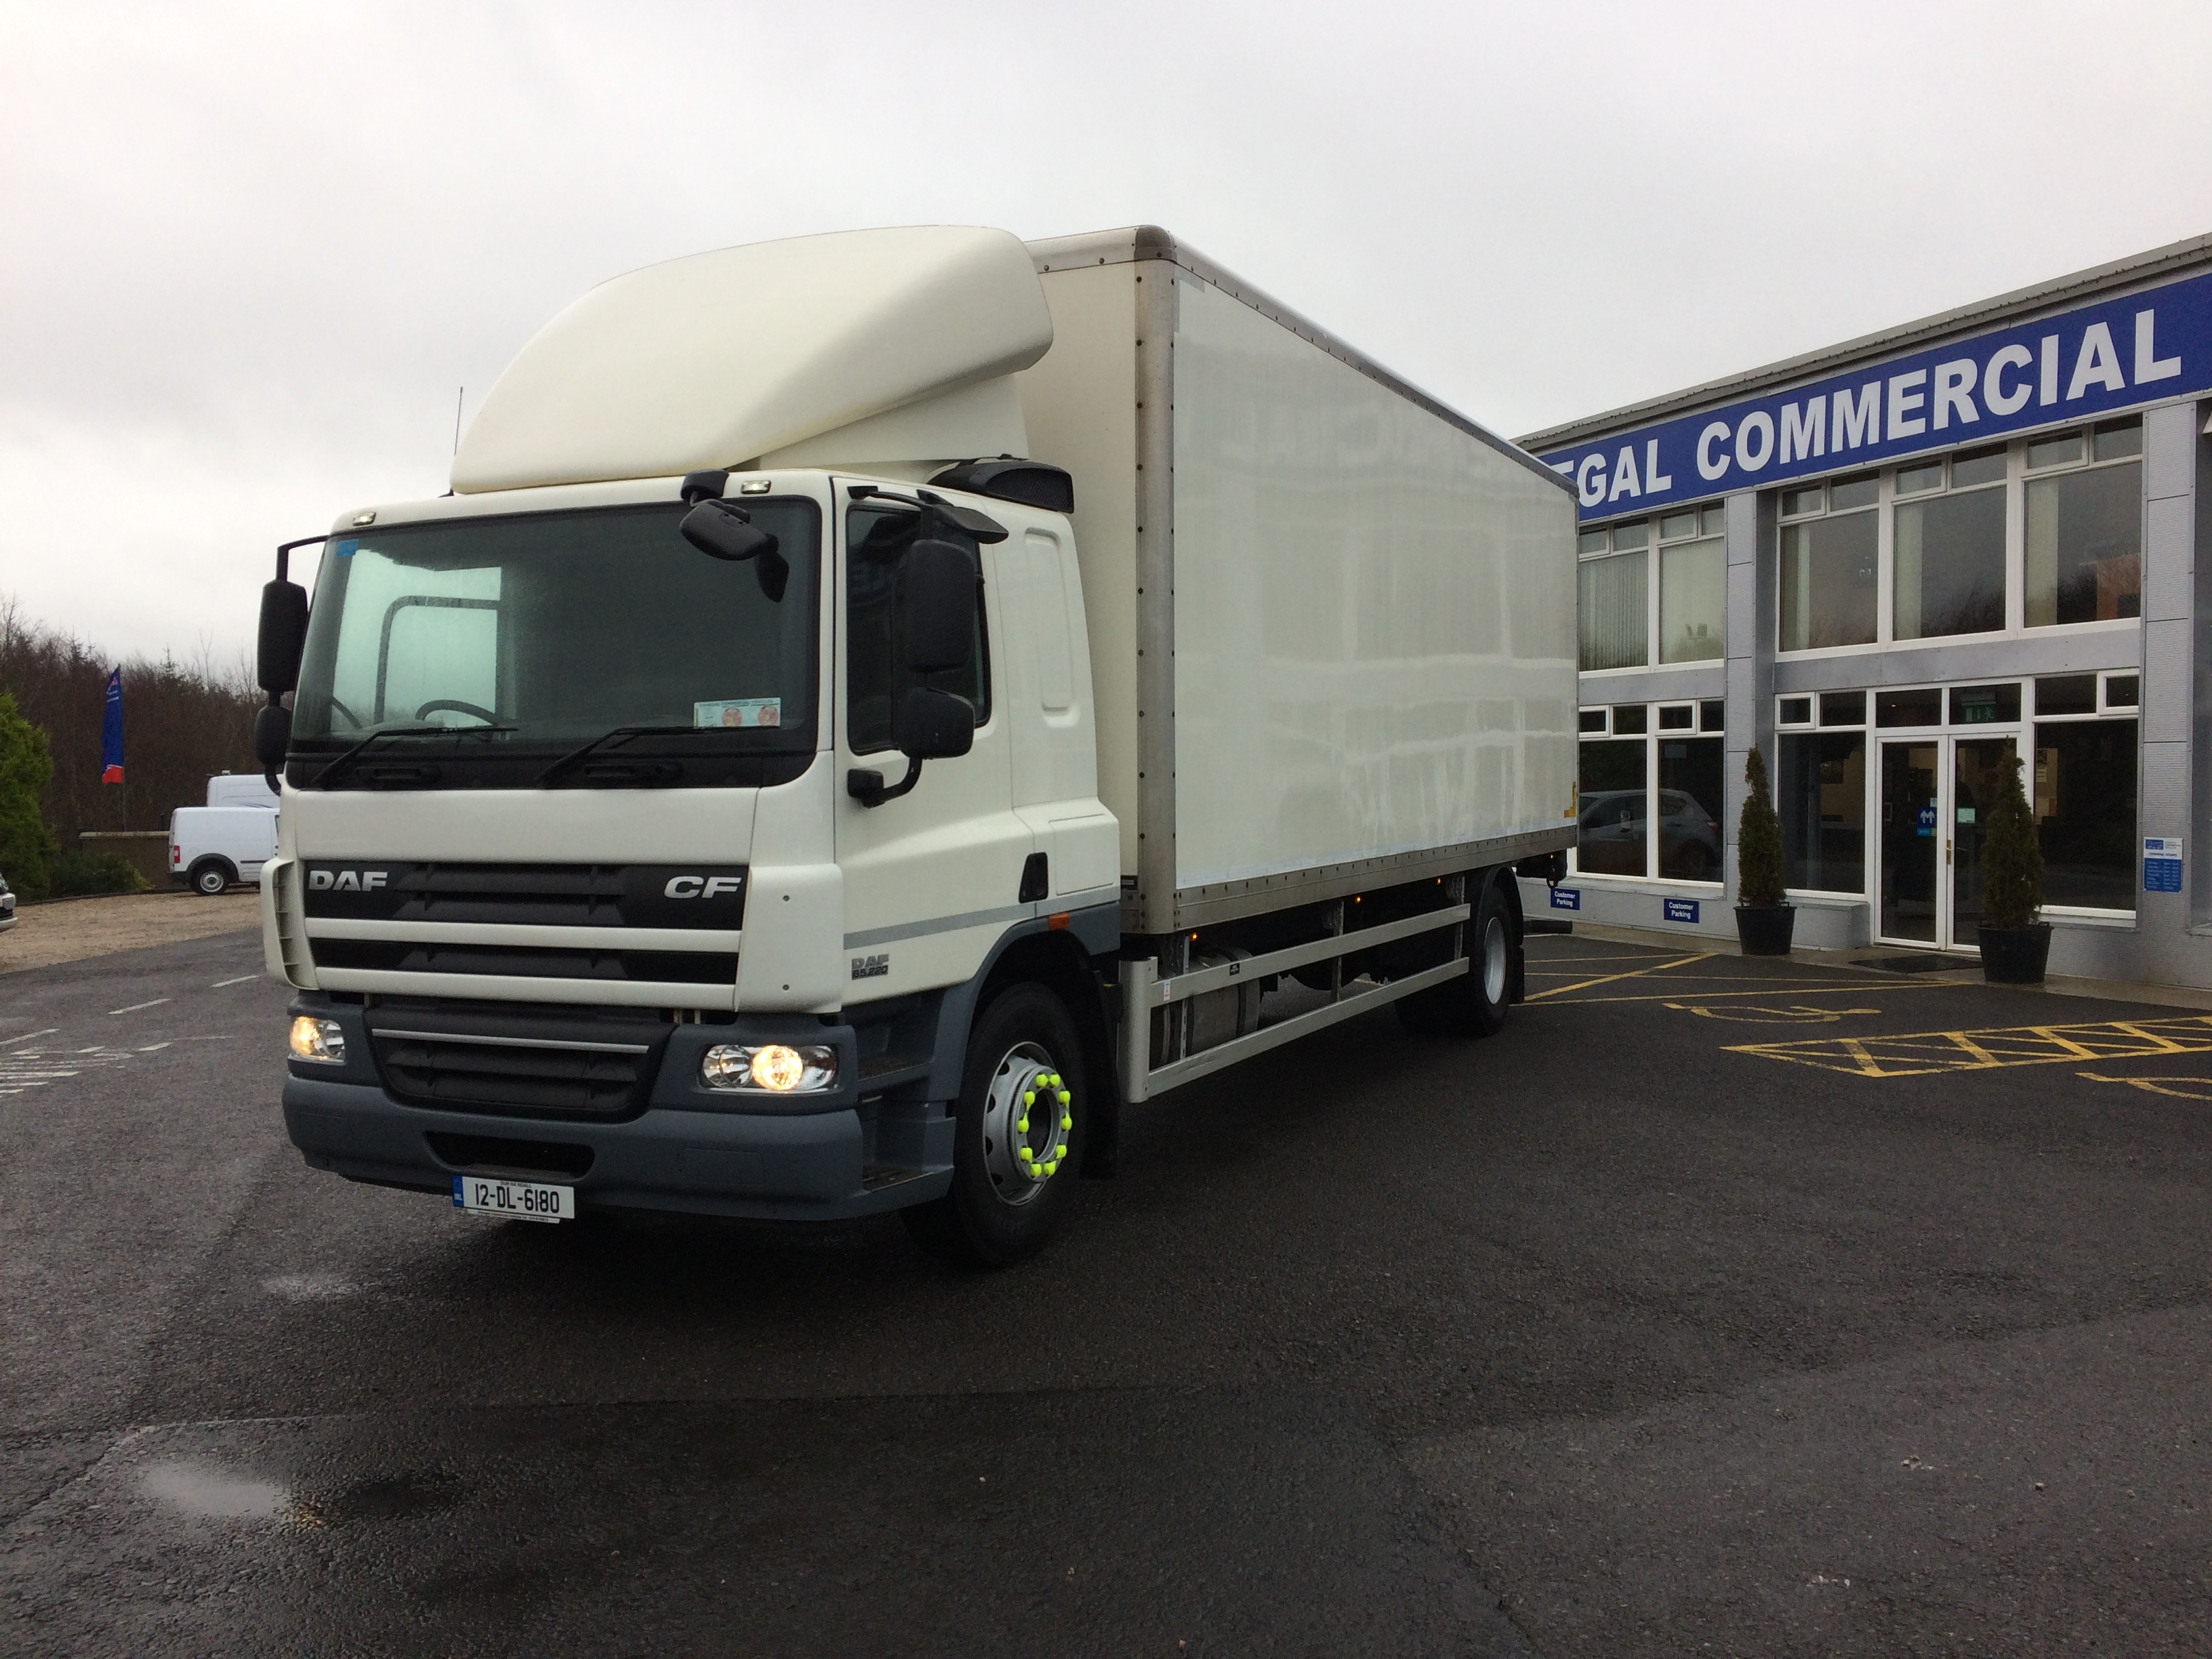 DAF CF 65 series/220 box body - Donegal Commercial Vehicles